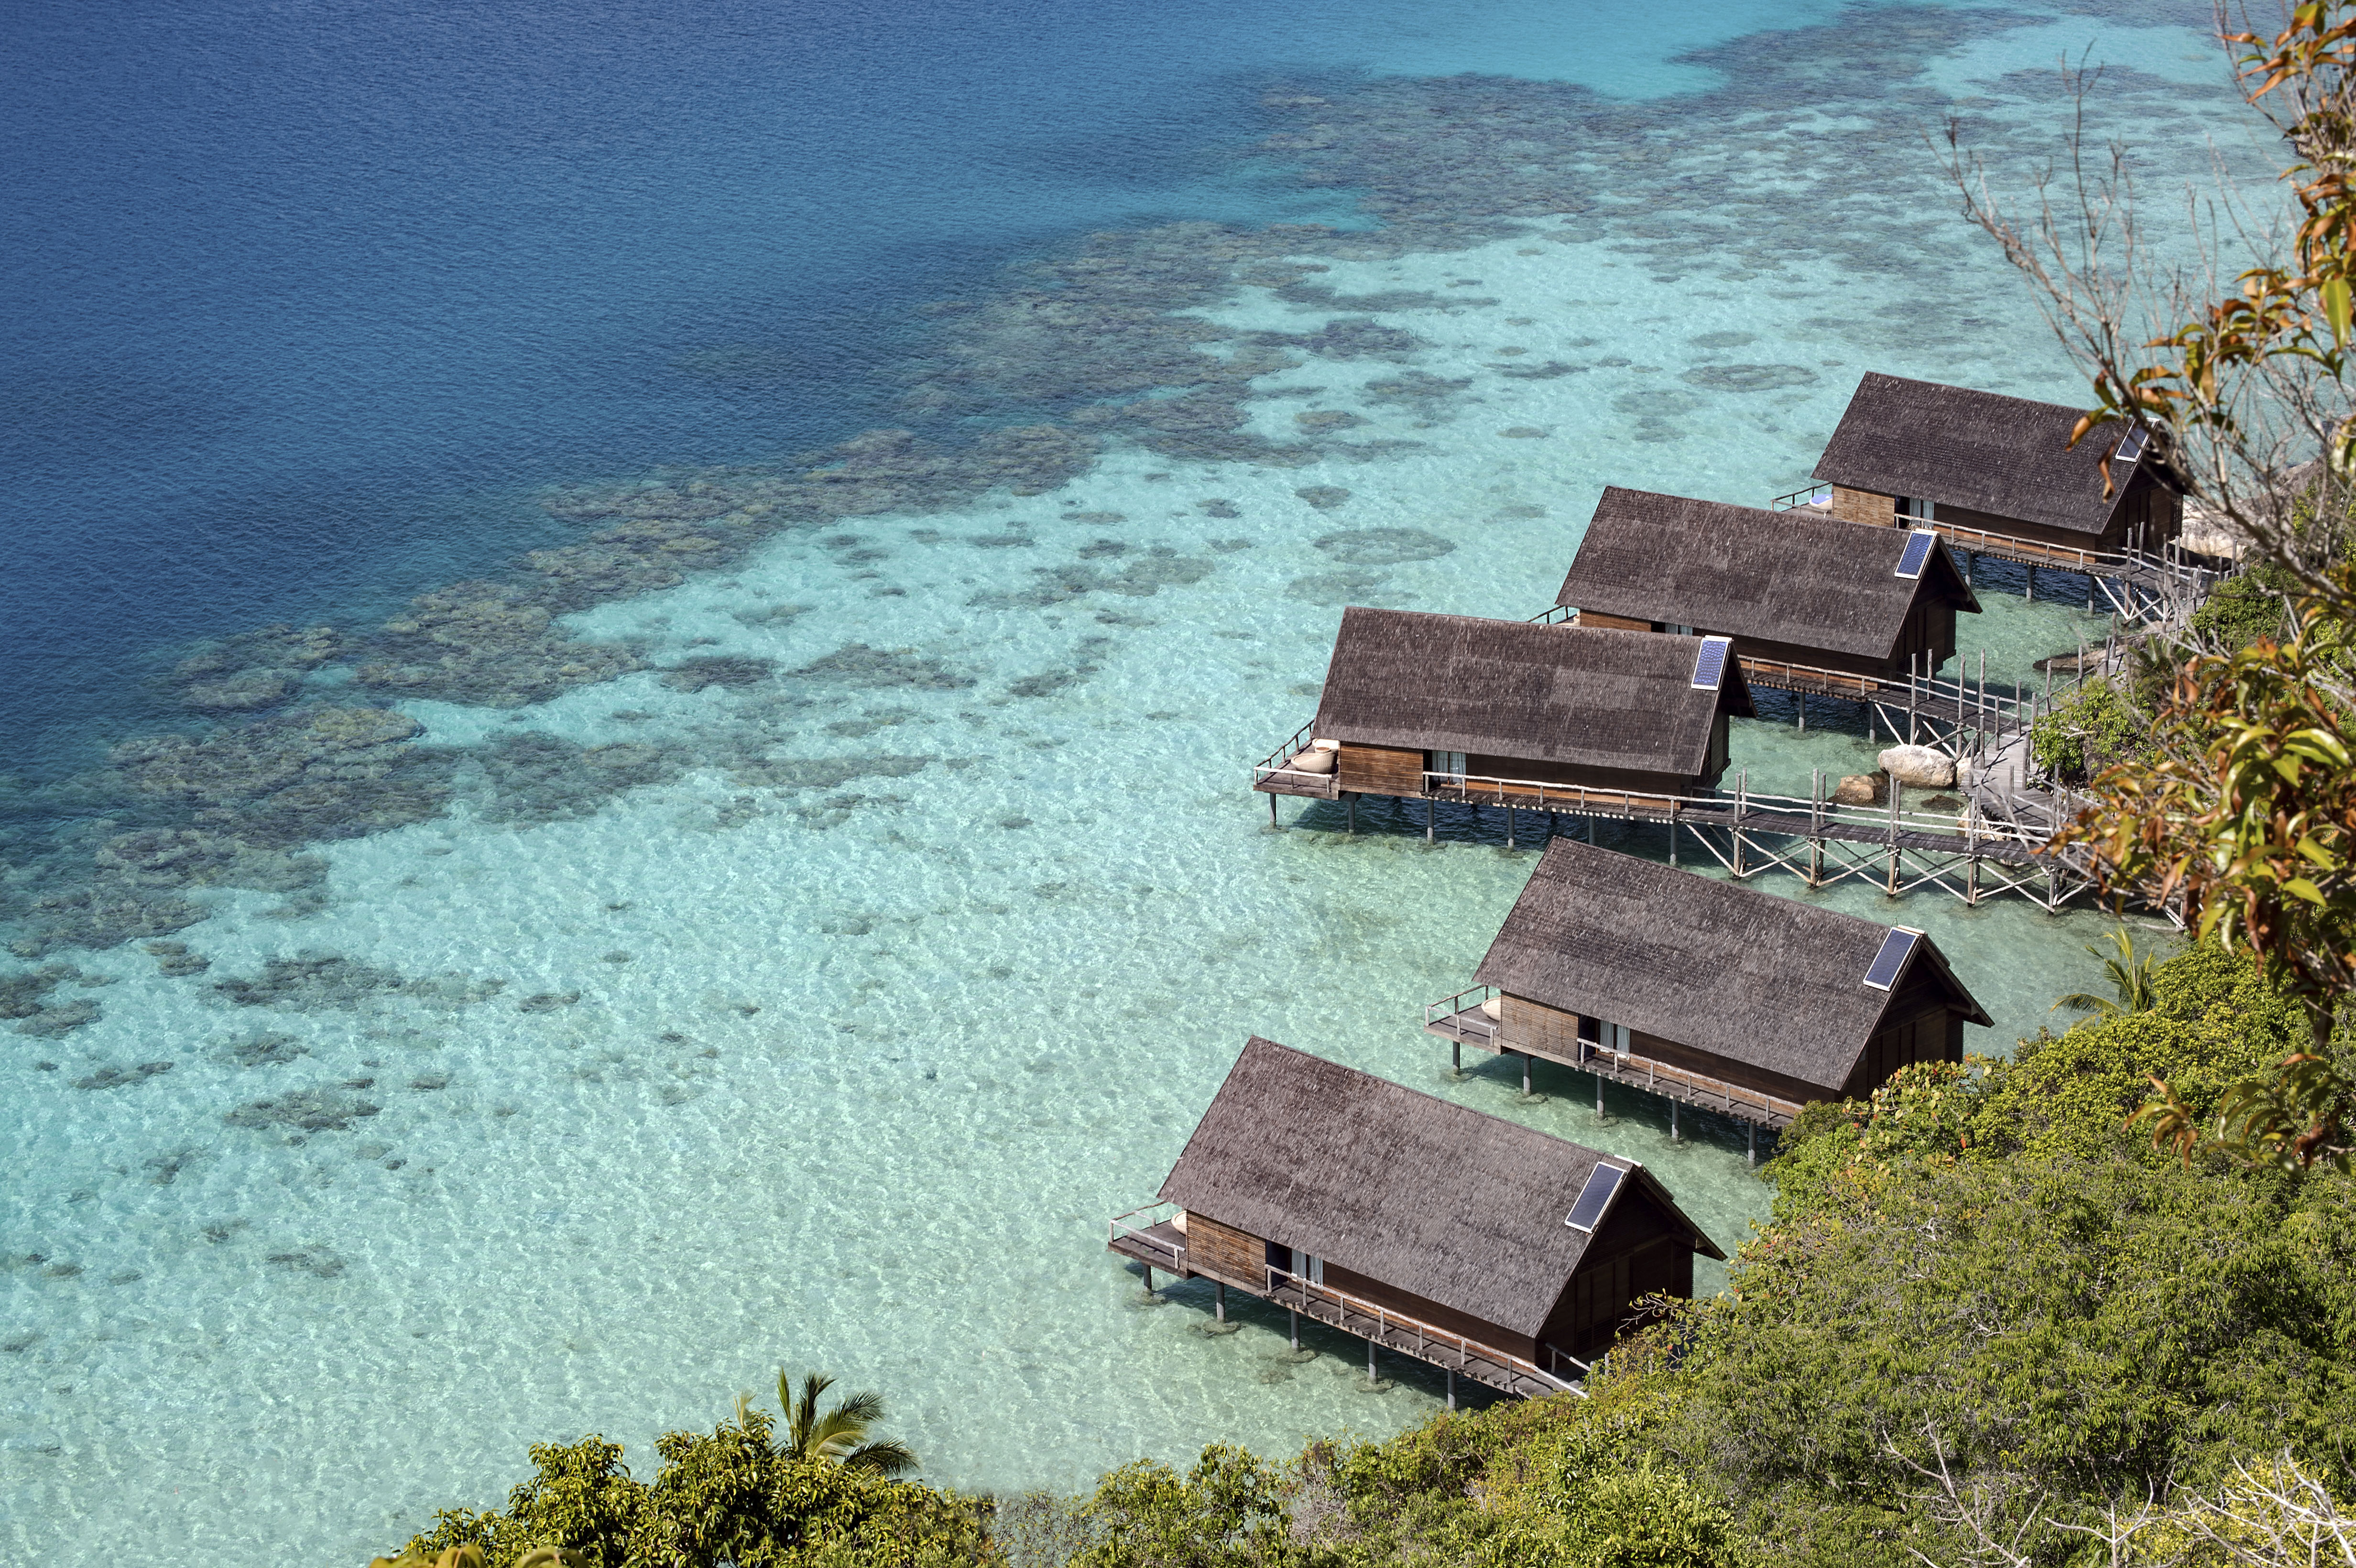 hike_close_up_west_overwater_suites_coral_reefs_lagoon_lookout